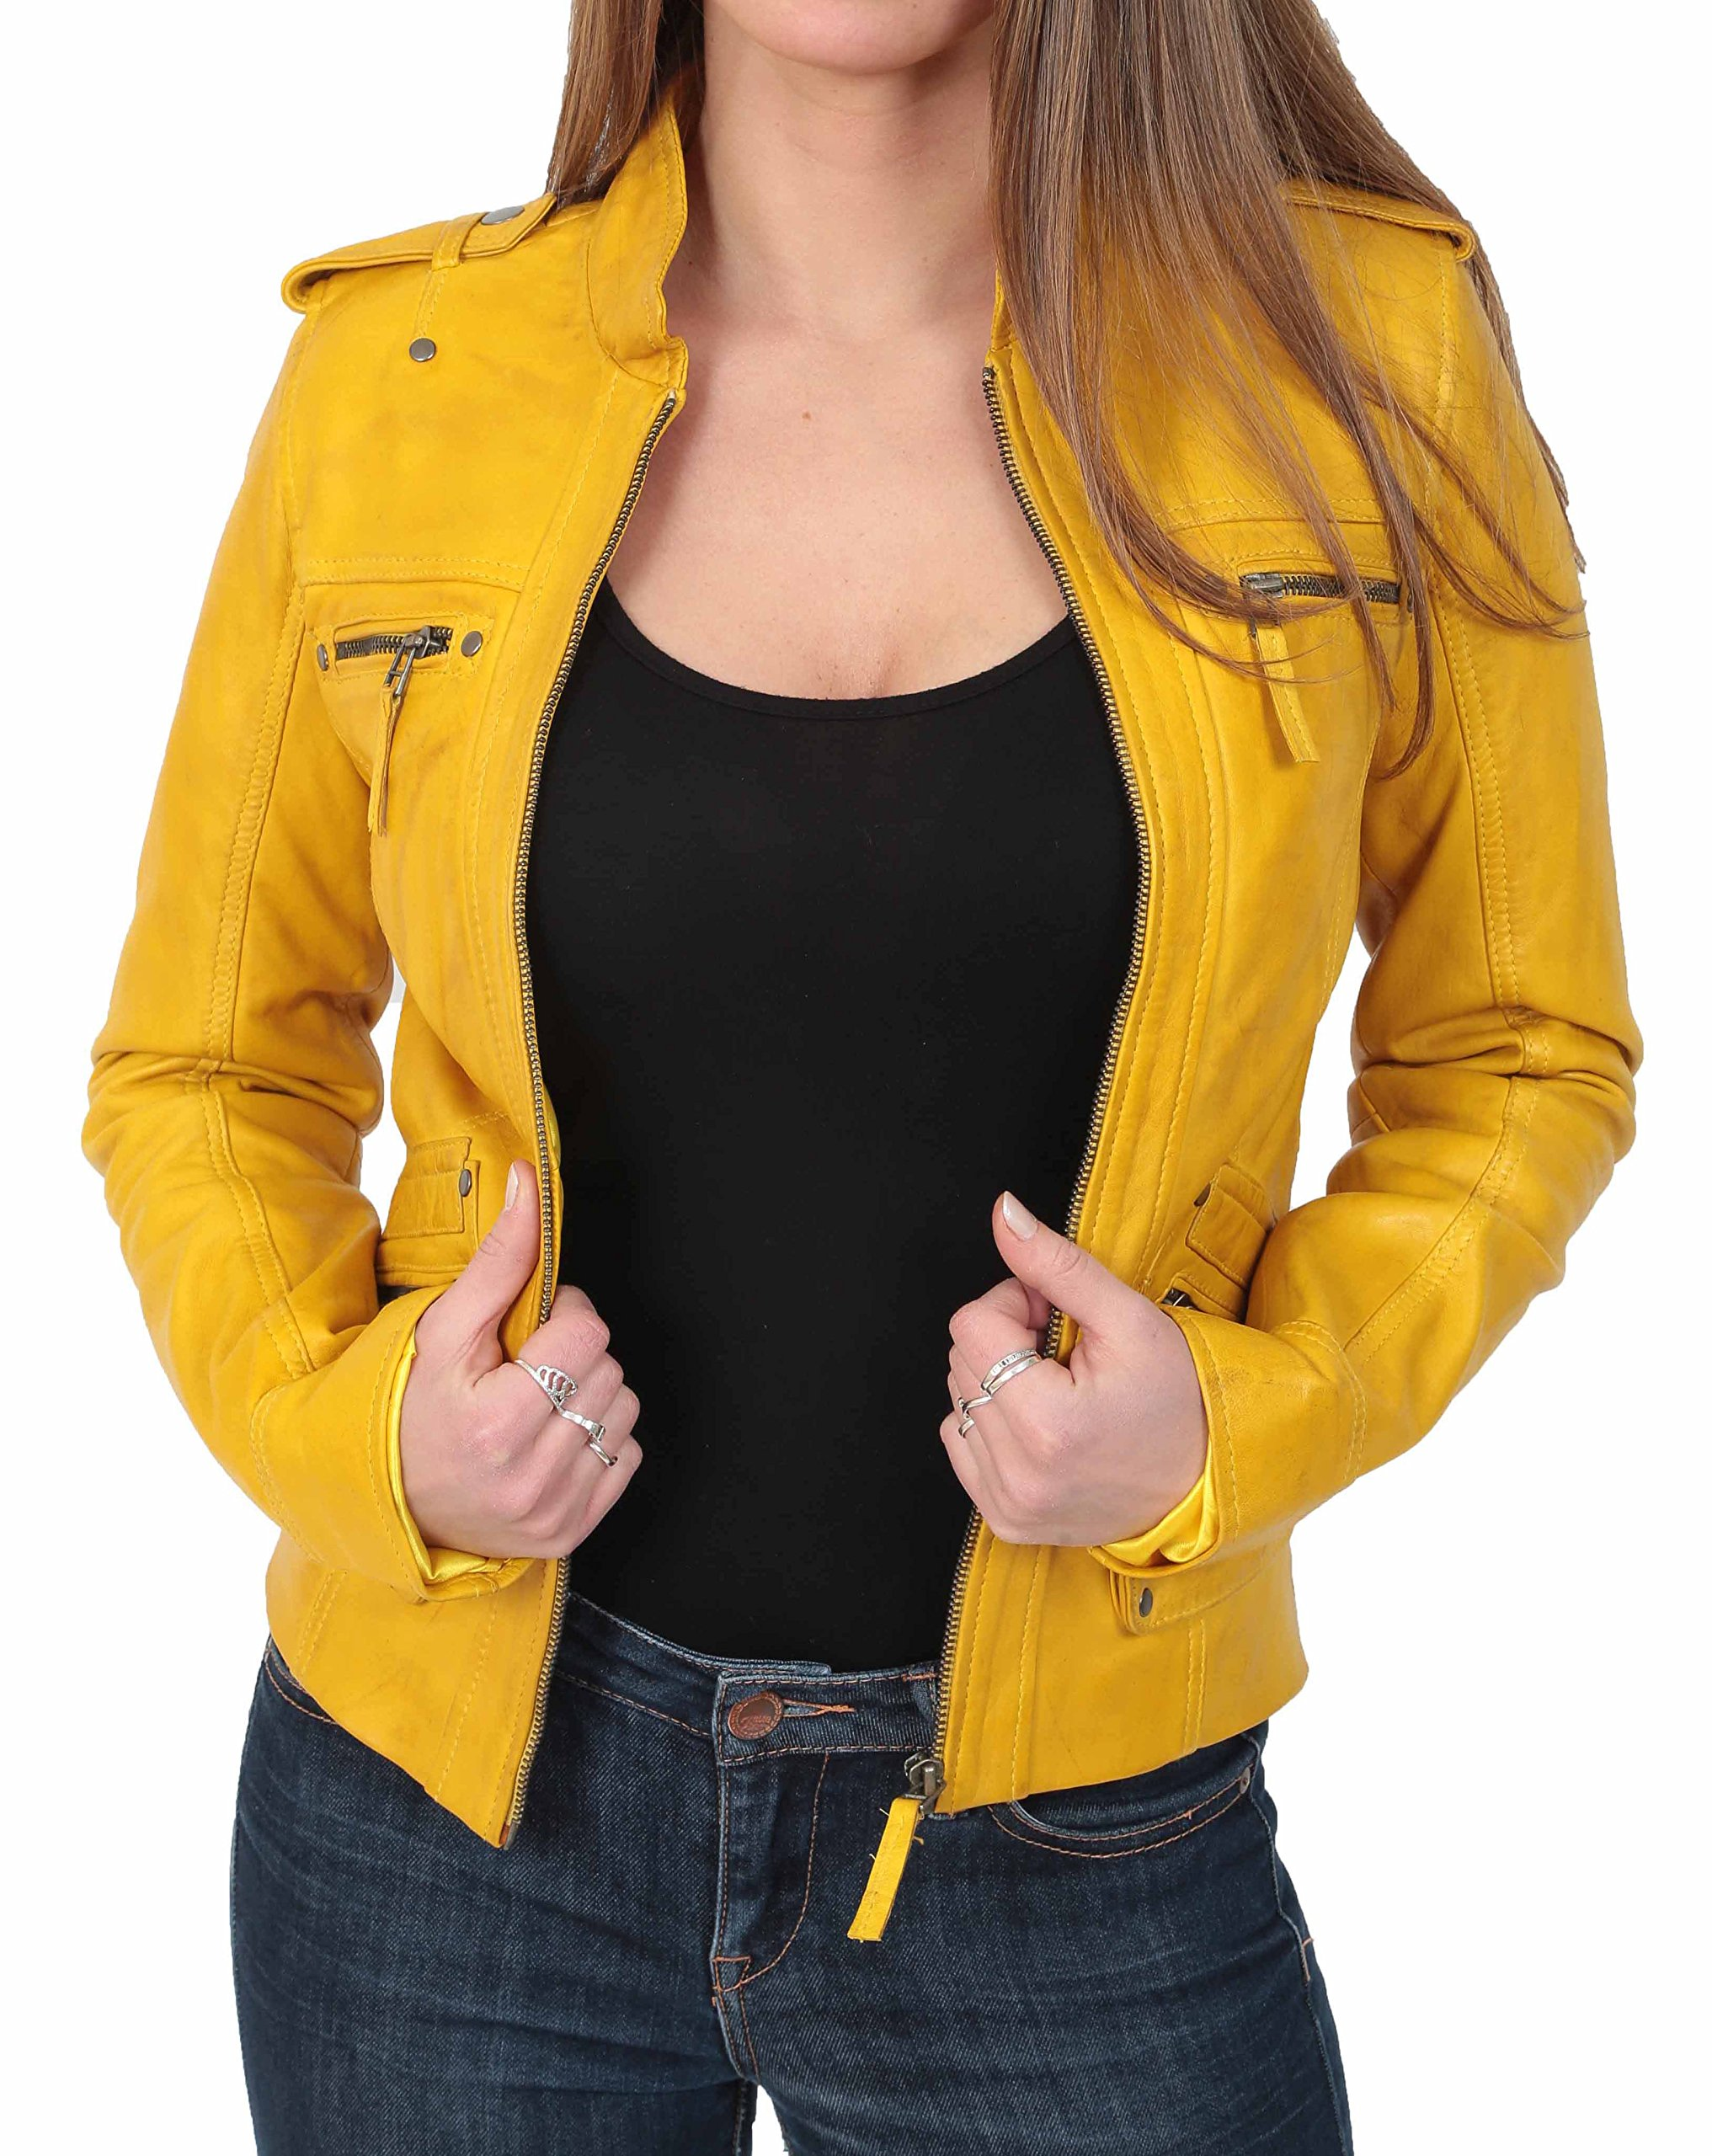 Ladies Leather Biker Style Casual Zip Up Jacket Standing Collar Laura Yellow (XX-Large)